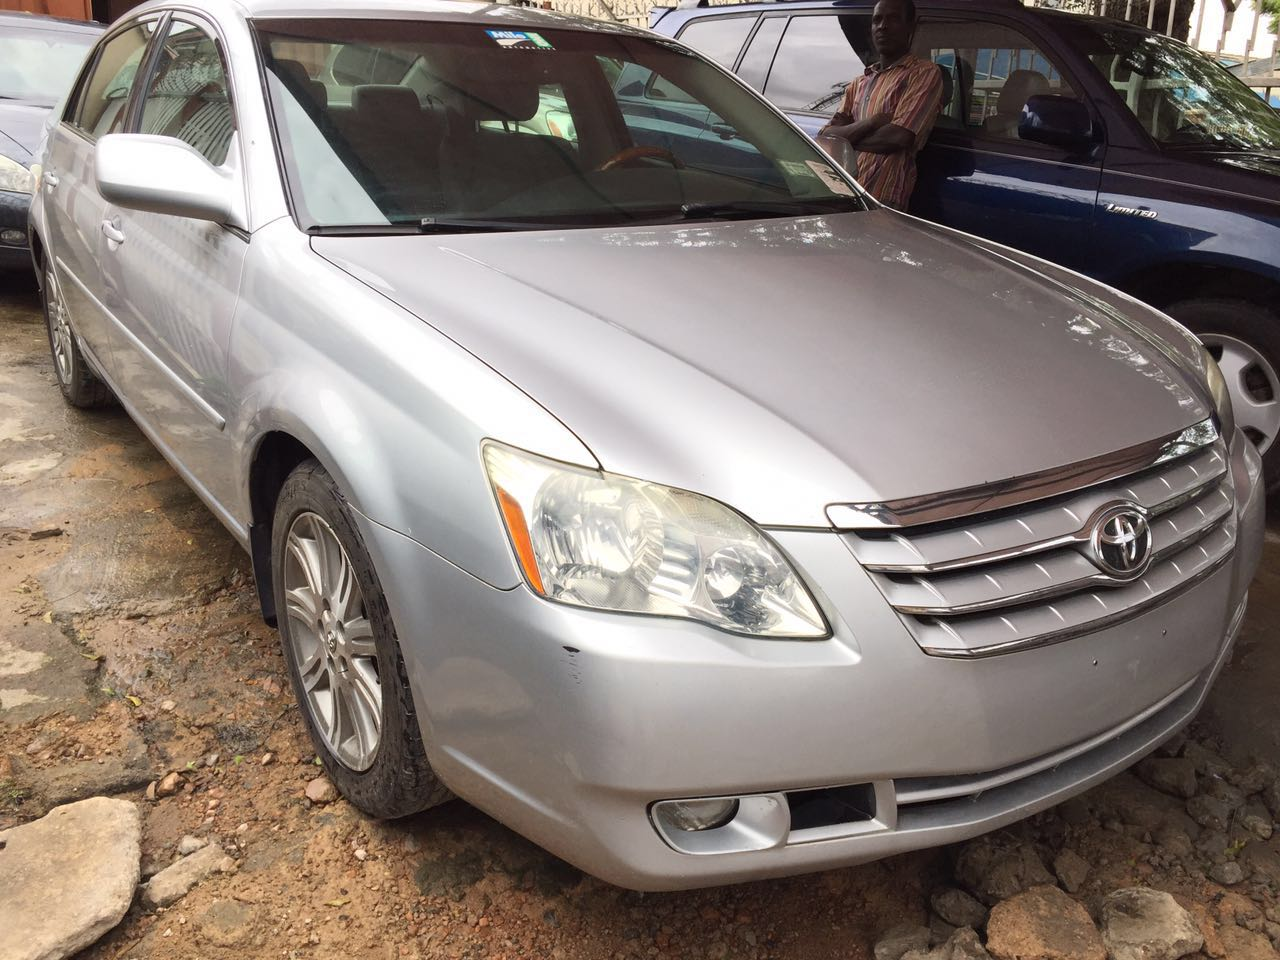 toyota avalon limited 2006 wit nav rev cam extremely sharp clean title see pix autos nigeria. Black Bedroom Furniture Sets. Home Design Ideas